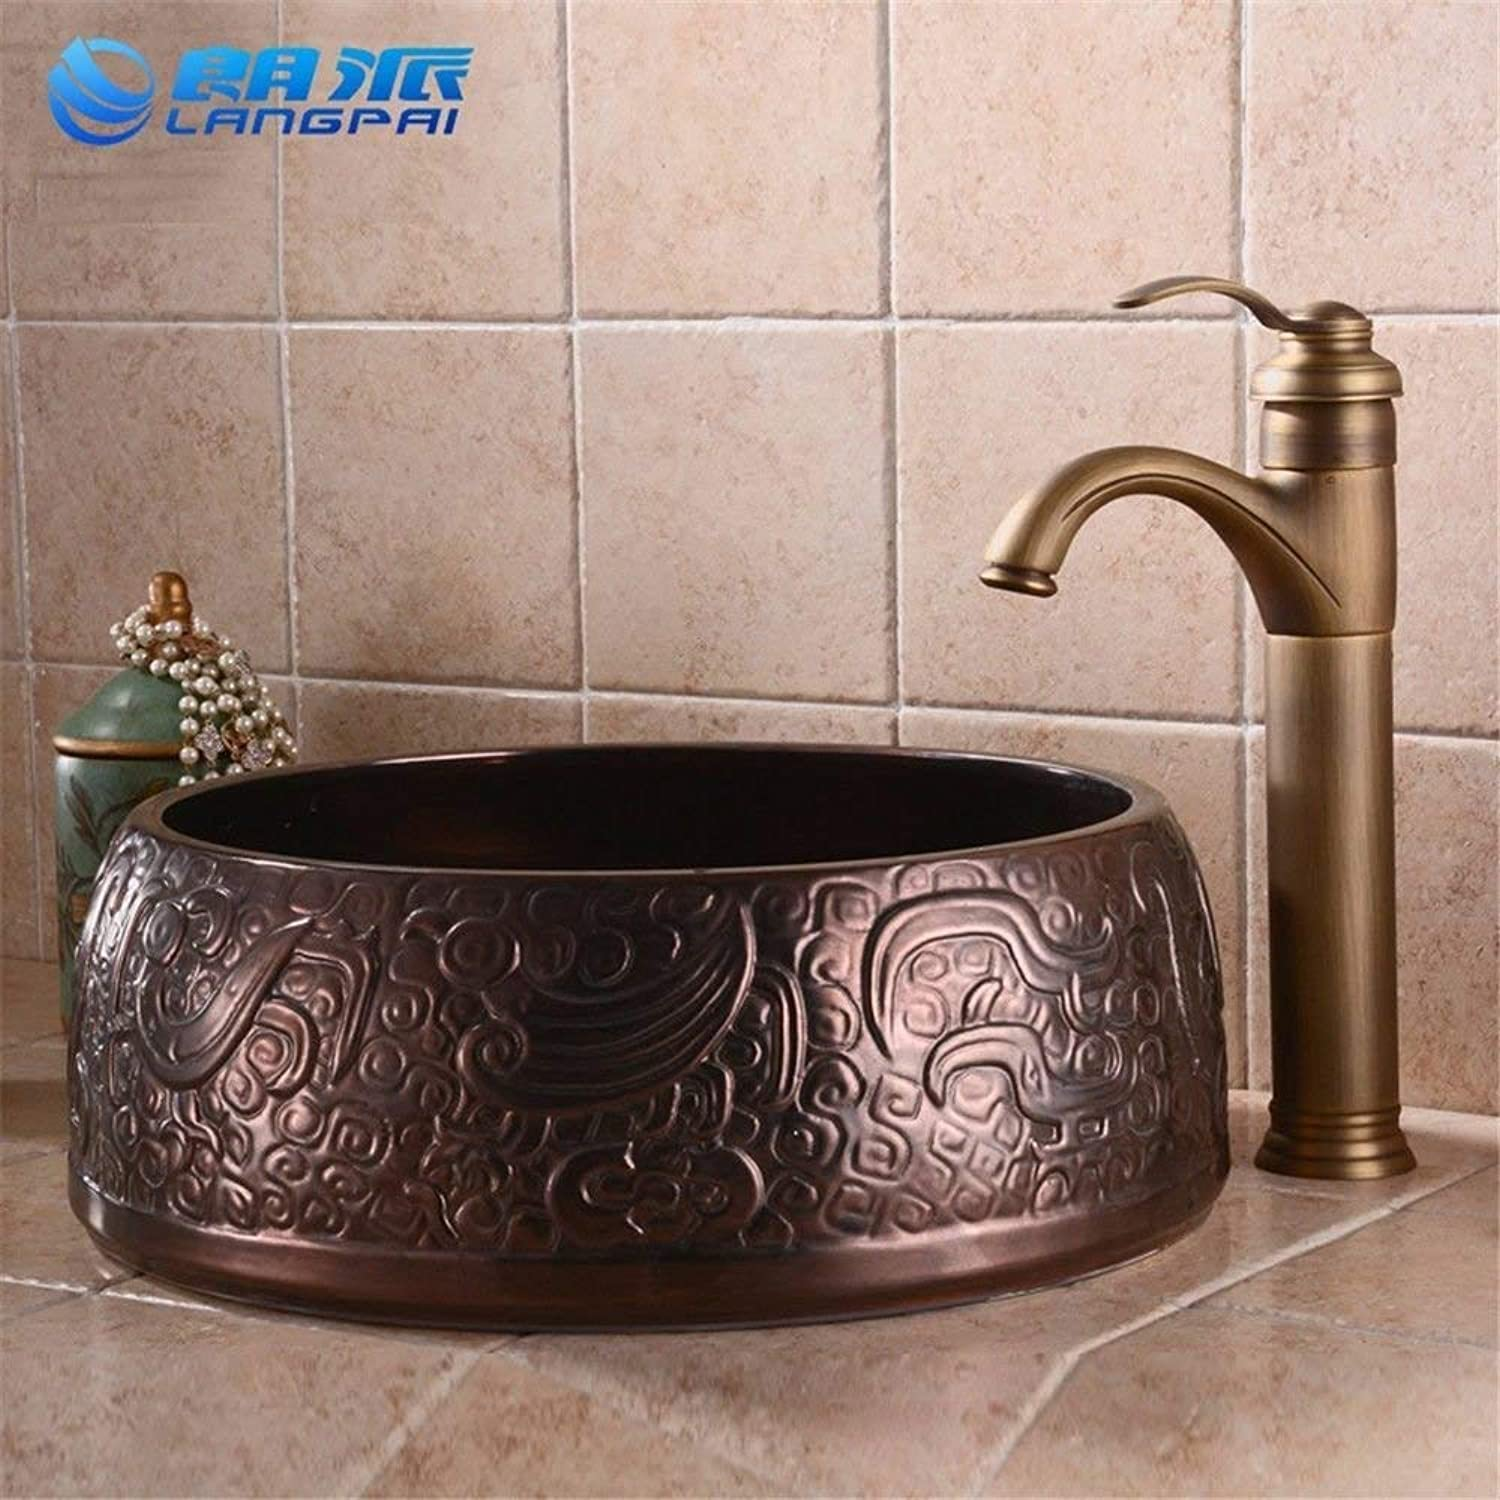 Kitchen Mixer faucets Antique Kitchen Sink Basin Mixer tap Faucet Sink Art Basin Classic Solid Brass hot and Cold (color   -, Size   -)